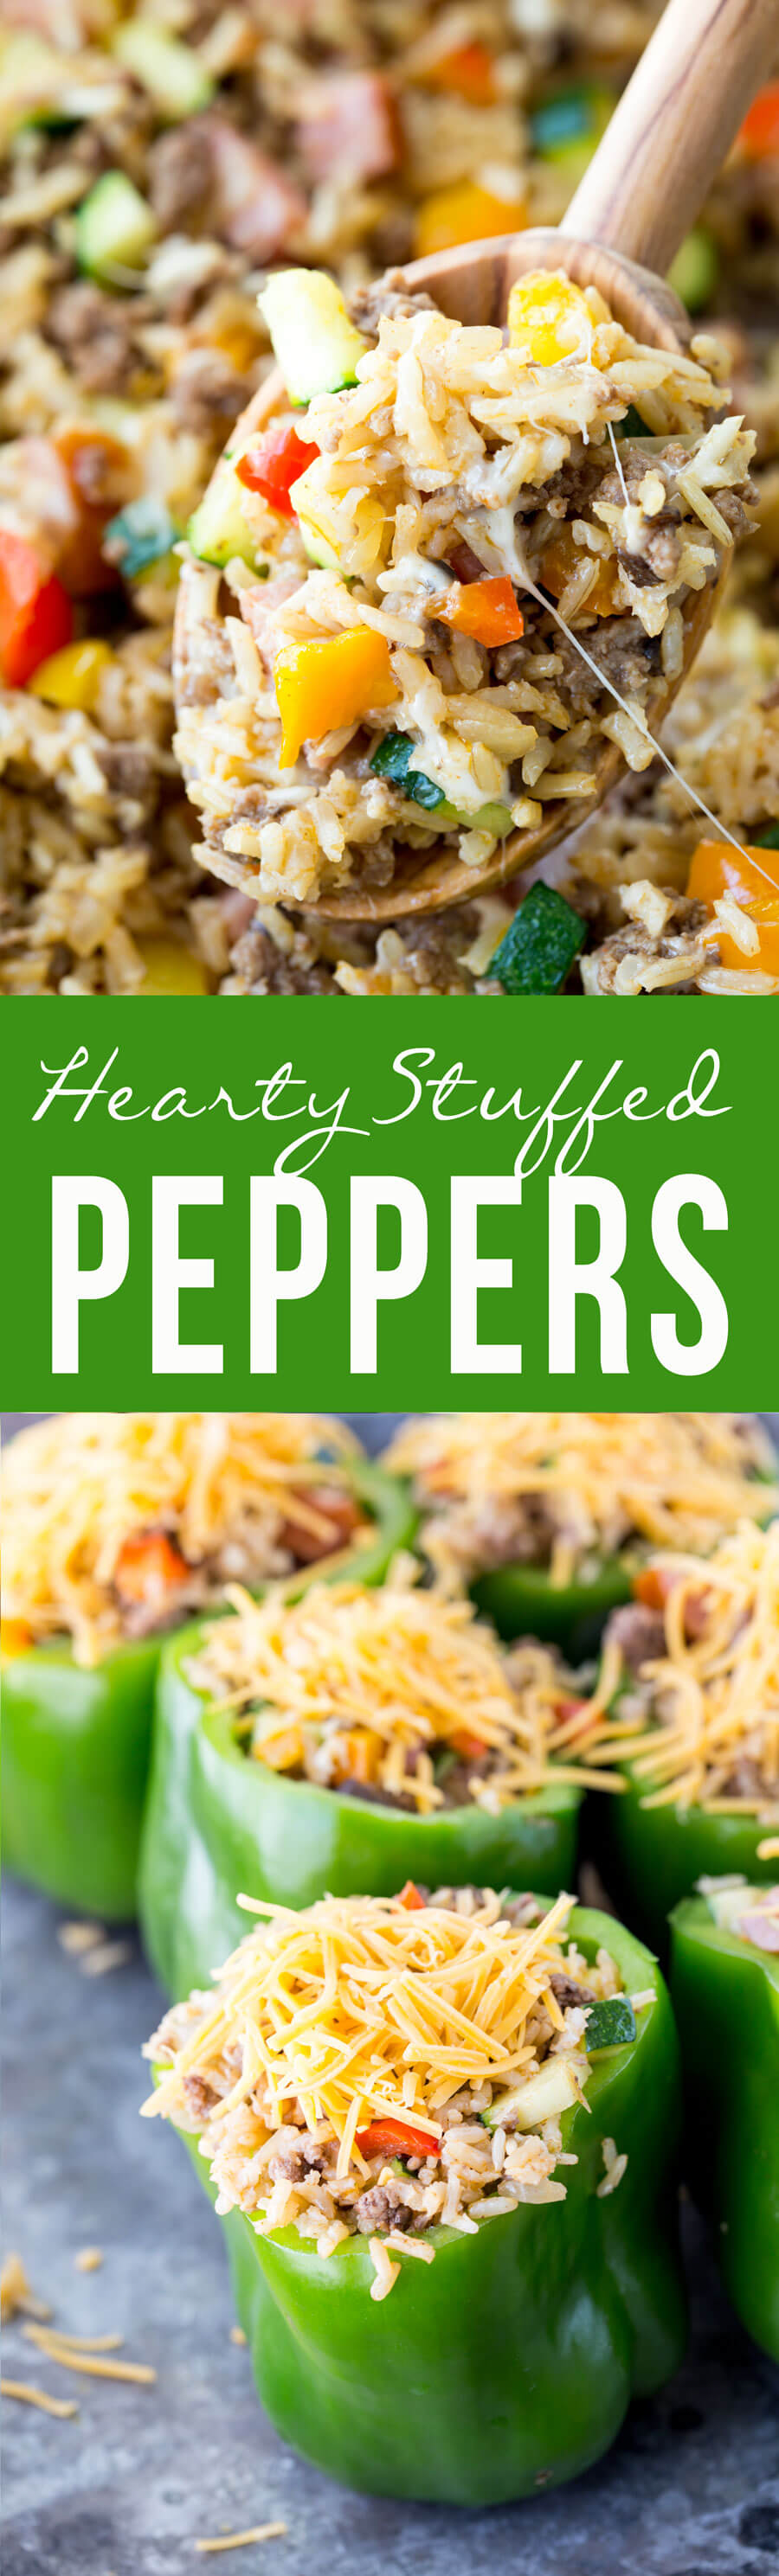 Hearty stuffed peppers are loaded with sausage, beef, veggies and brown rice